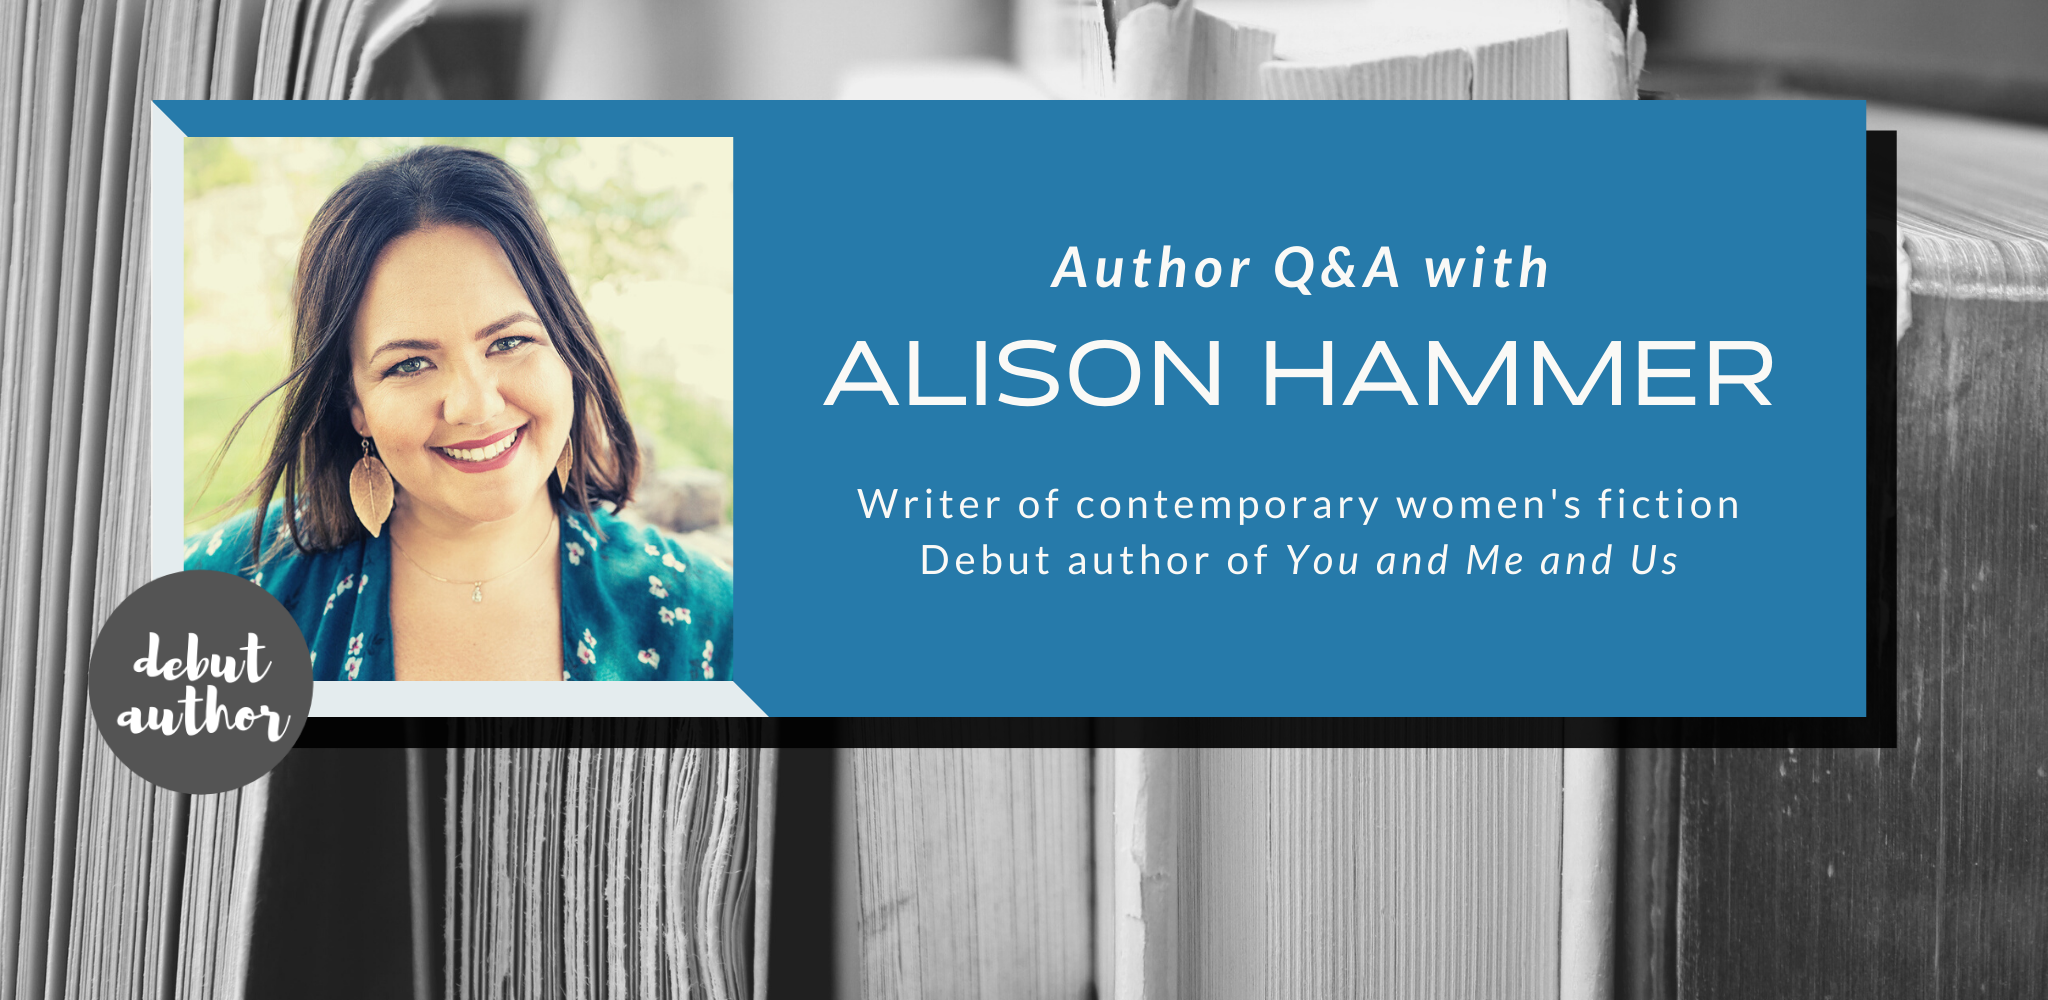 Q&A with Alison Hammer